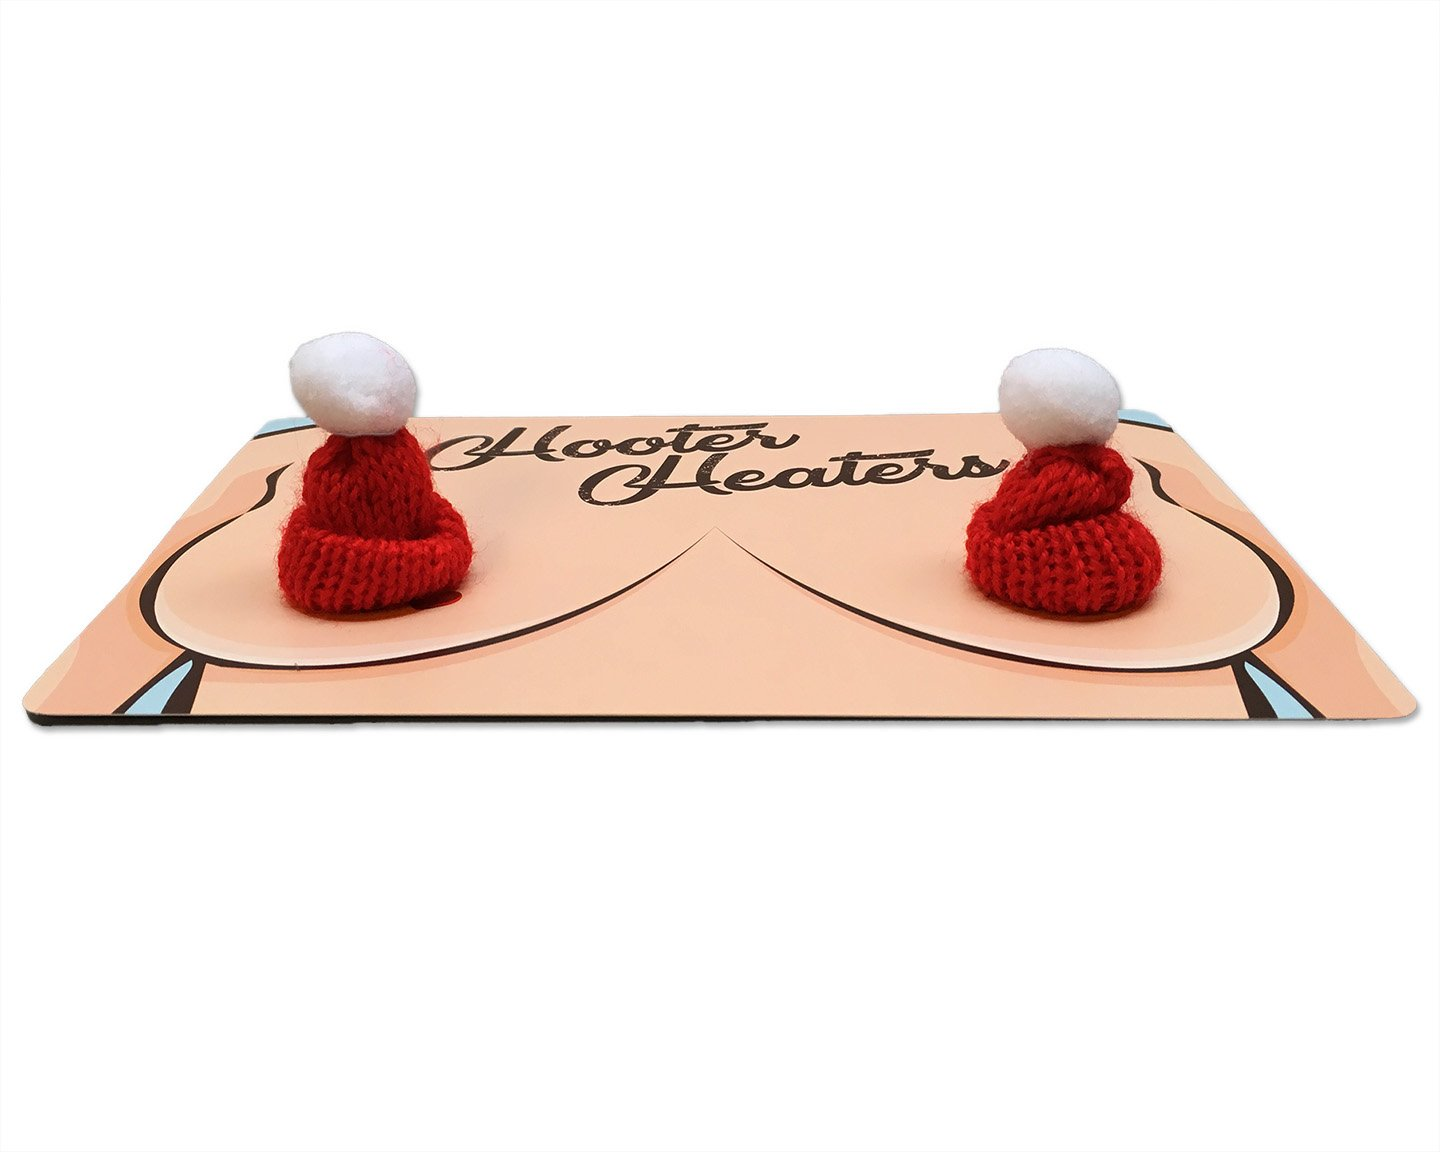 Its a Hat for Your Hooters Funny Gag Gift for Ladies Gears Out Hooter Heaters Chest Warmers for Women